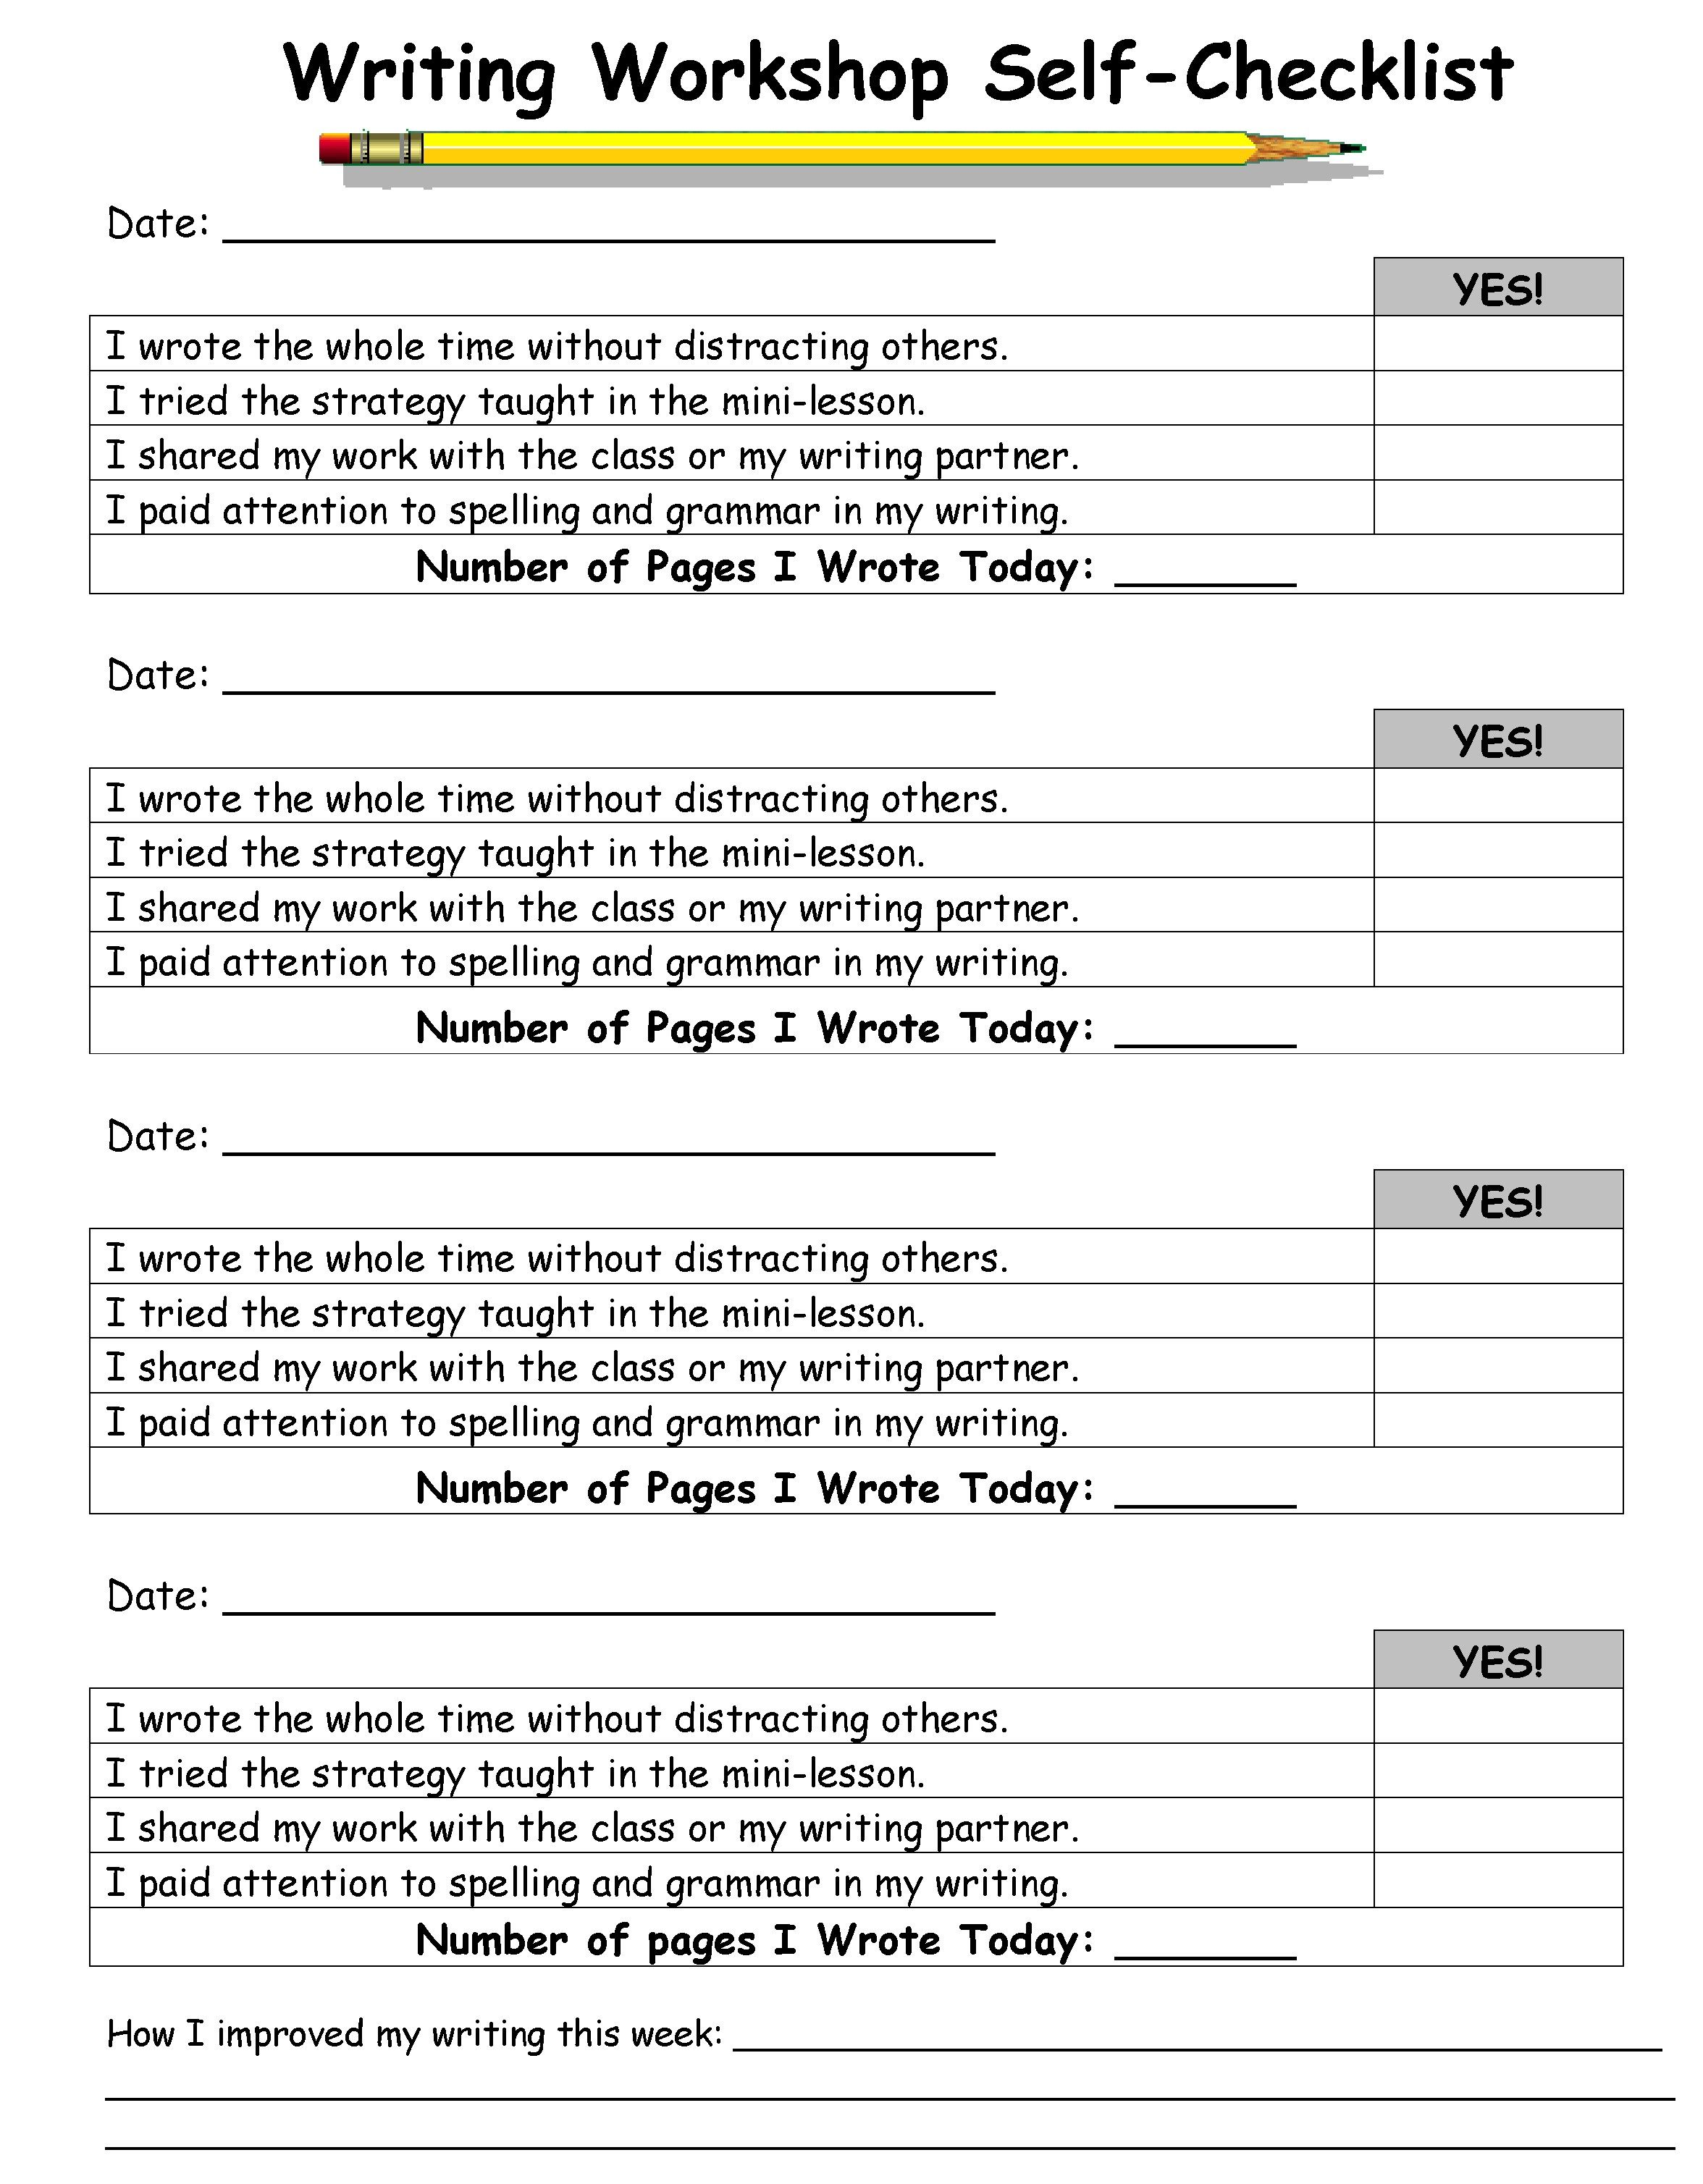 Writers workshop self assessment. Author clipart checklist student